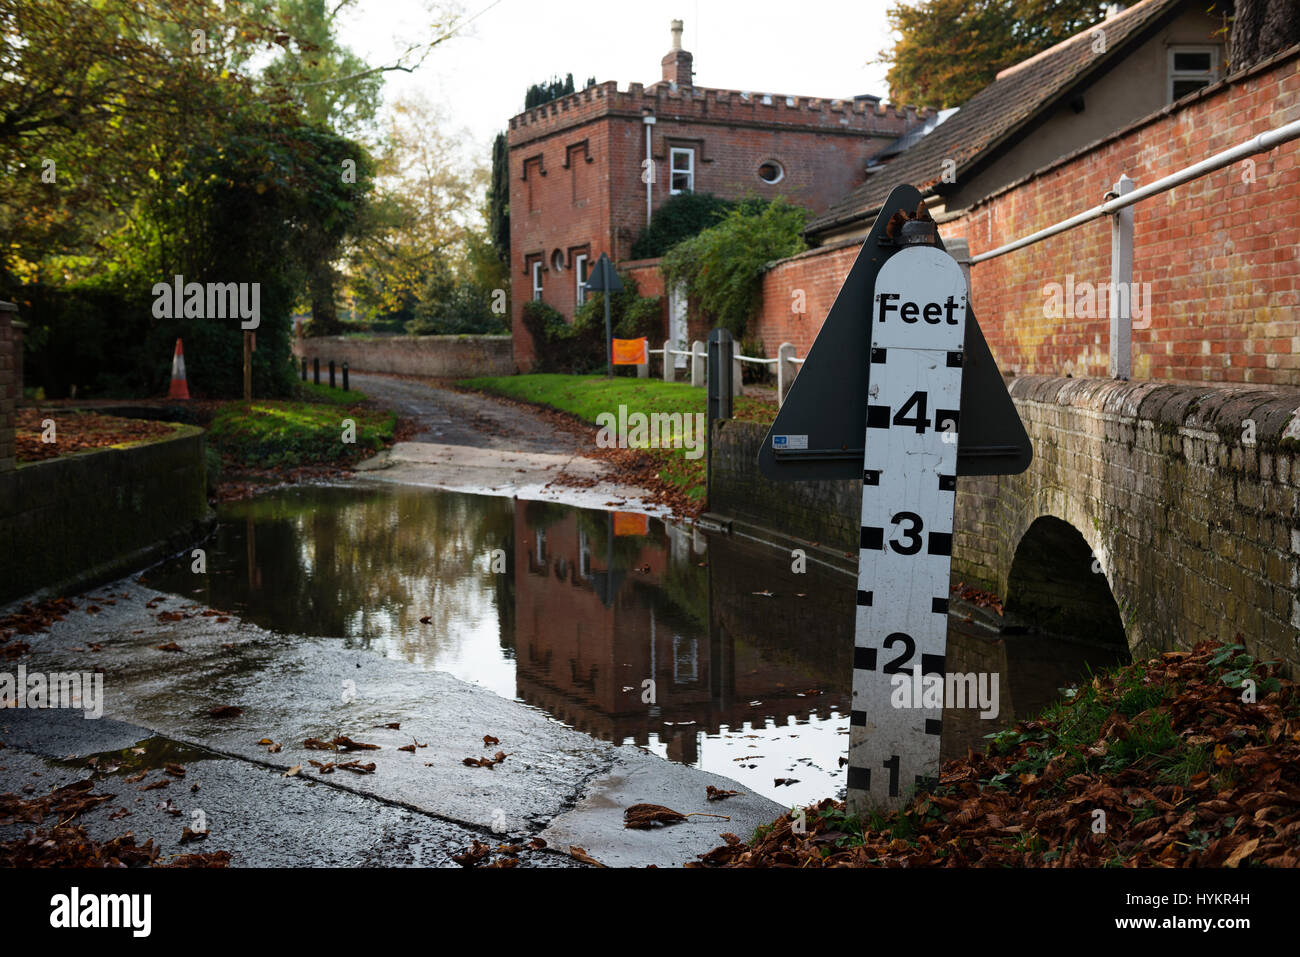 Ford crossing a road in the village of Grundisburgh, Suffolk, UK. - Stock Image